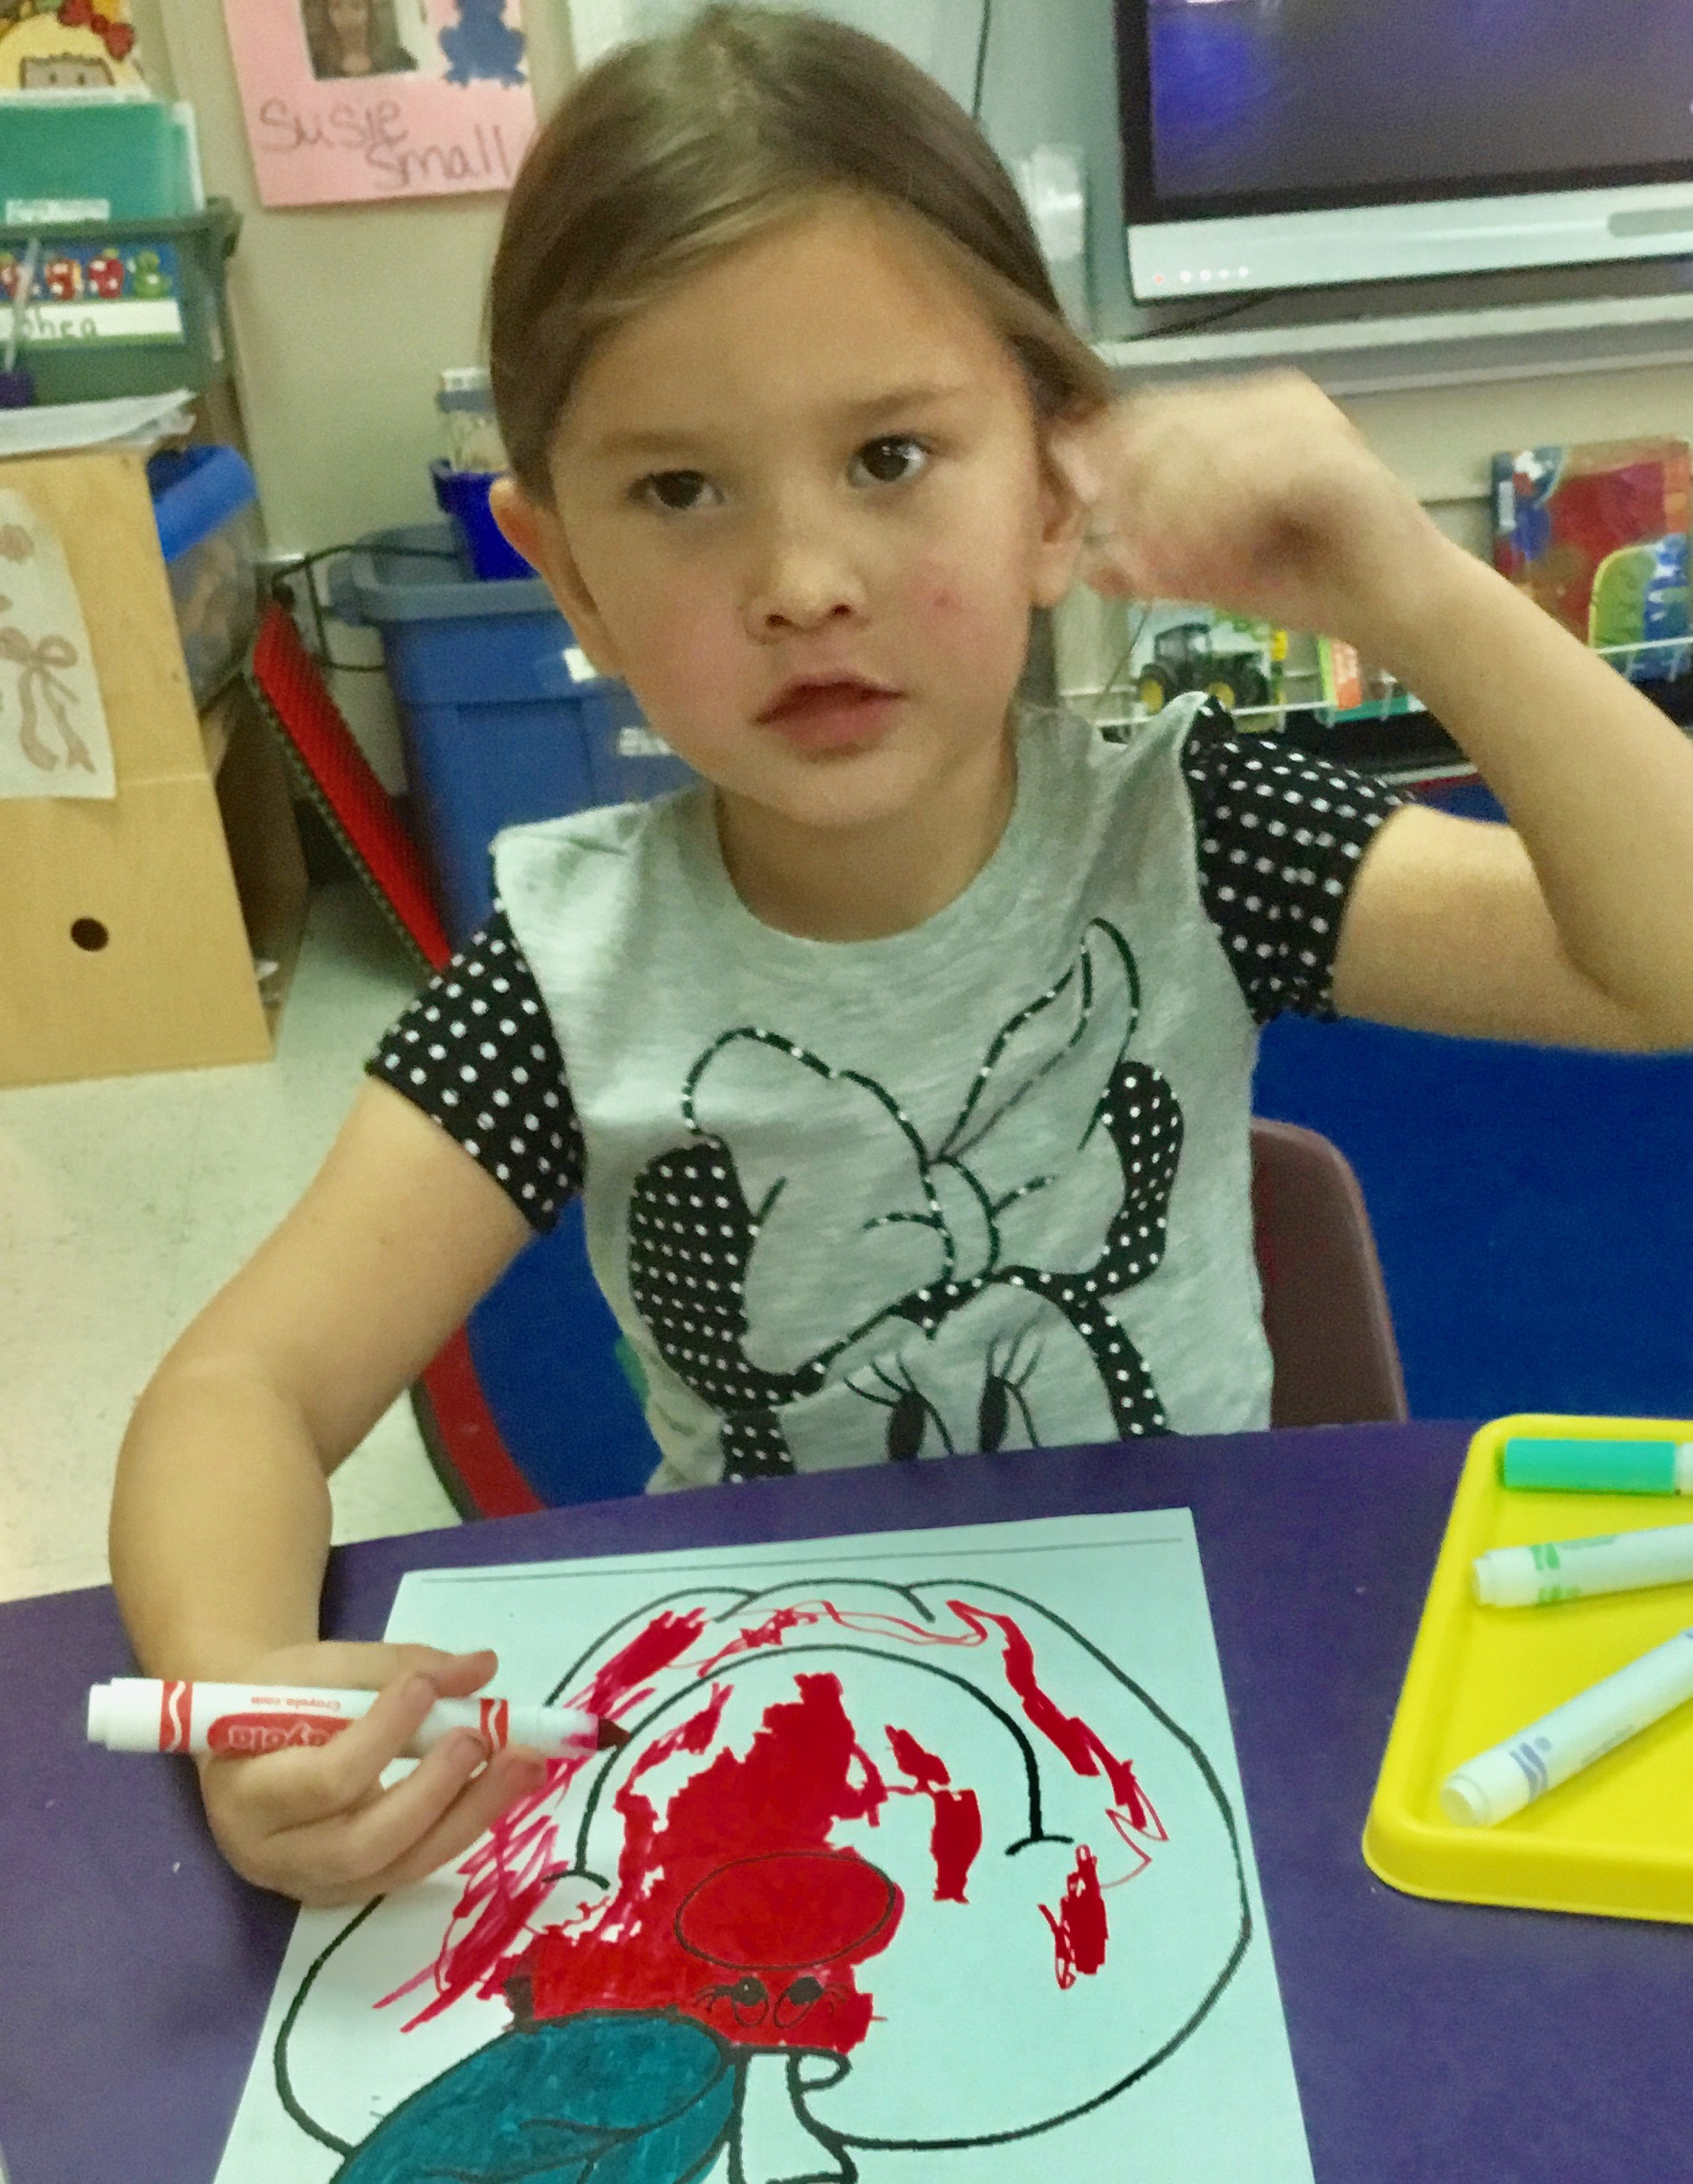 A Pre-K student colors with donated supplies.